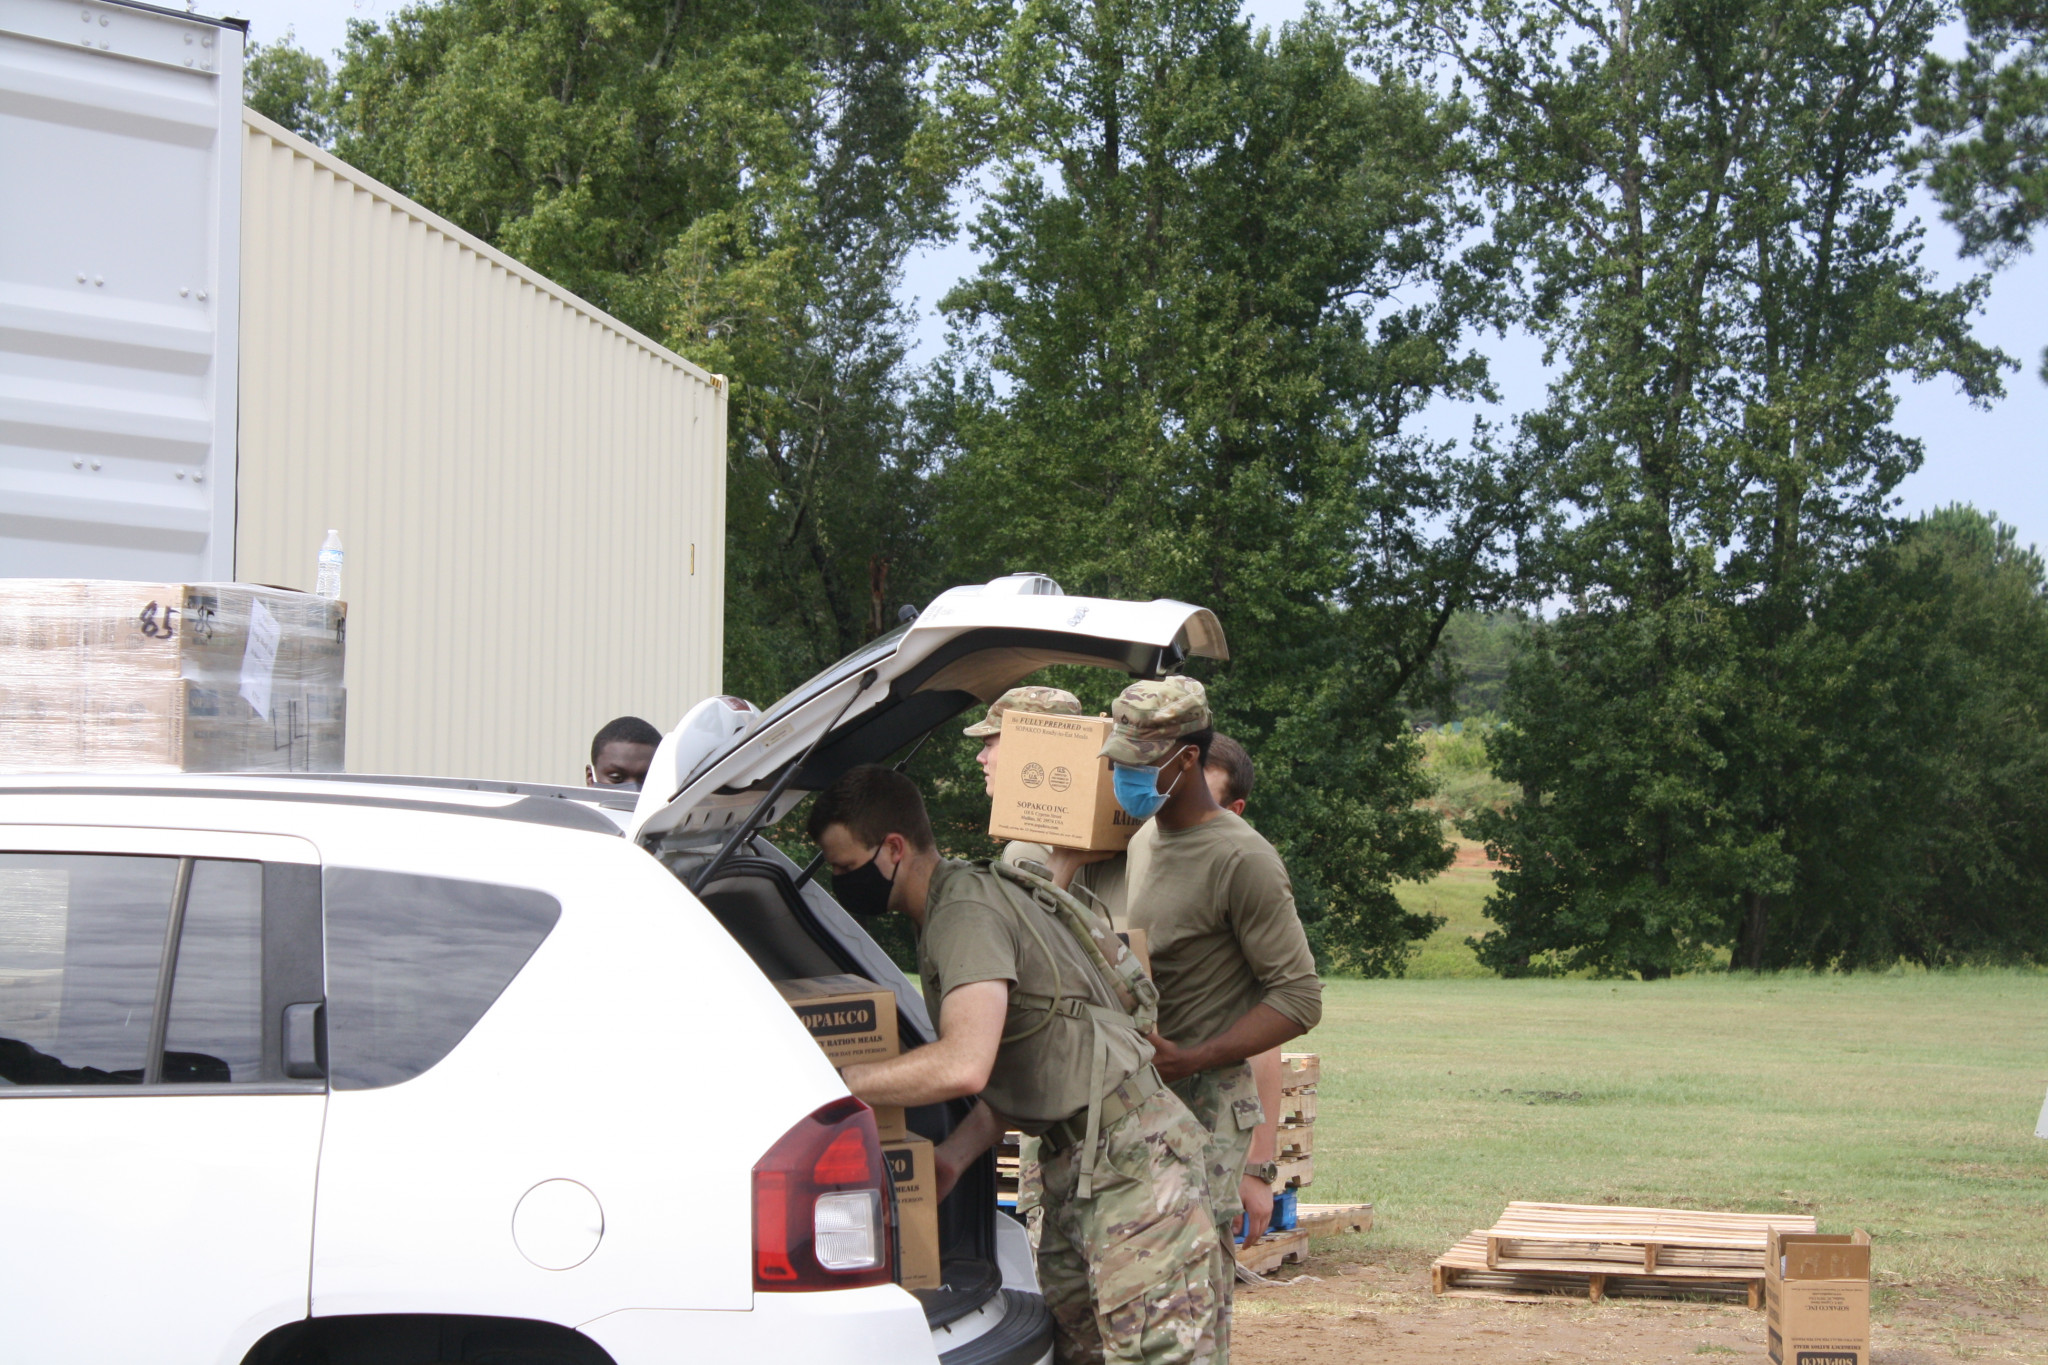 The Louisiana National Guard arrived at the Ruston Exhibition Center on Friday morning with cases of water and boxes of pre-packaged meals. Pictured are guardsmen loading water and boxes of food into cars.